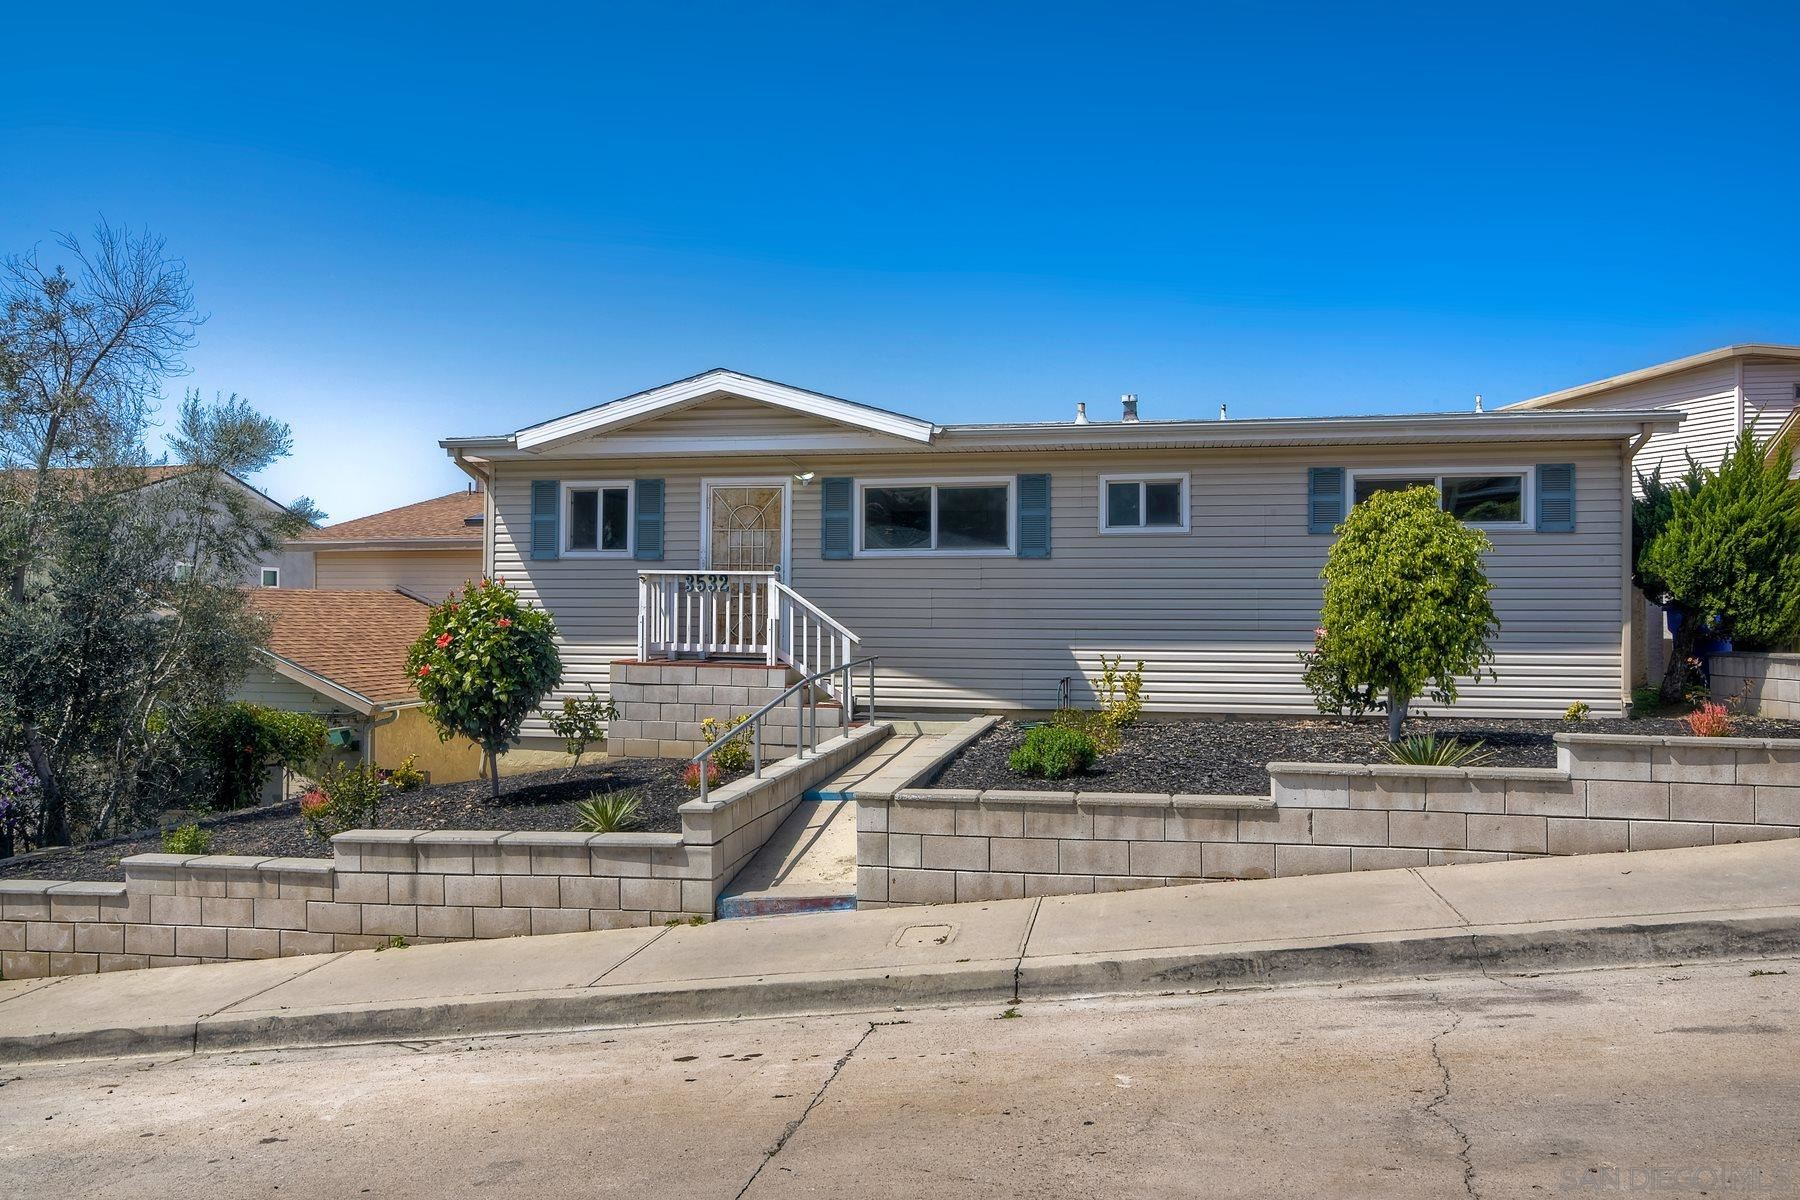 Photo of 3532 Moultrie Ave, San Diego, CA 92117 (MLS # 210008357)